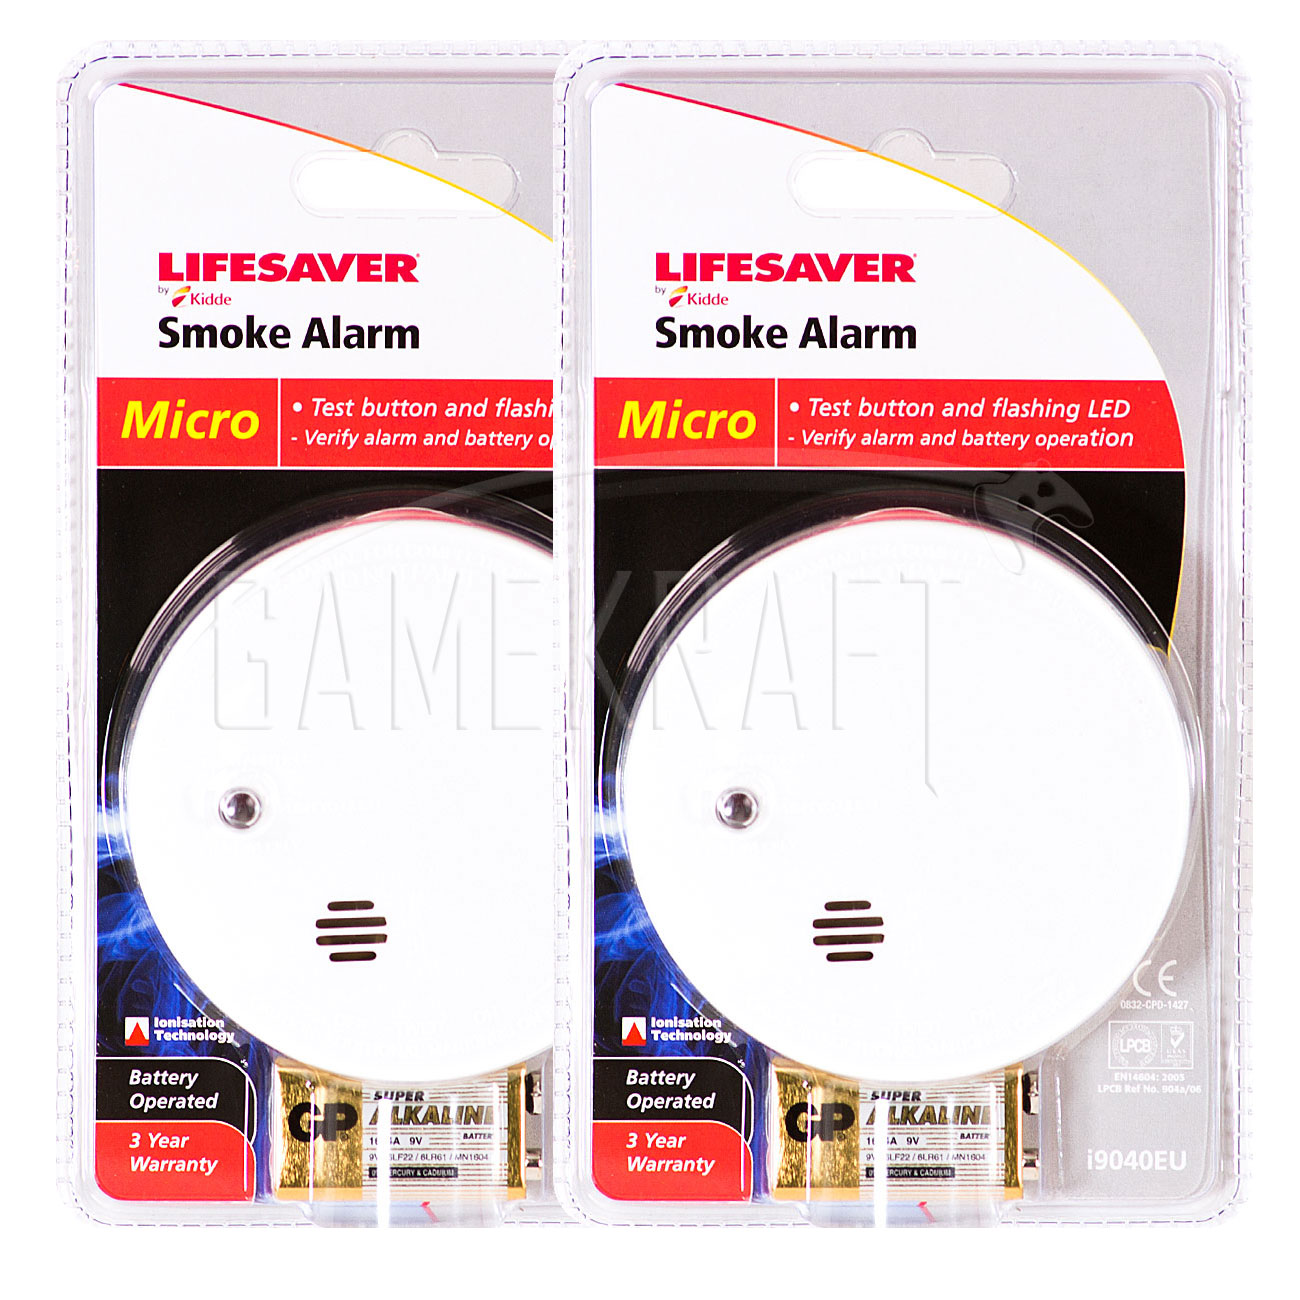 2 x KIDDE LIFESAVER Smoke Detectors Fire Alarm Ionisation Batteries Included Enlarged Preview